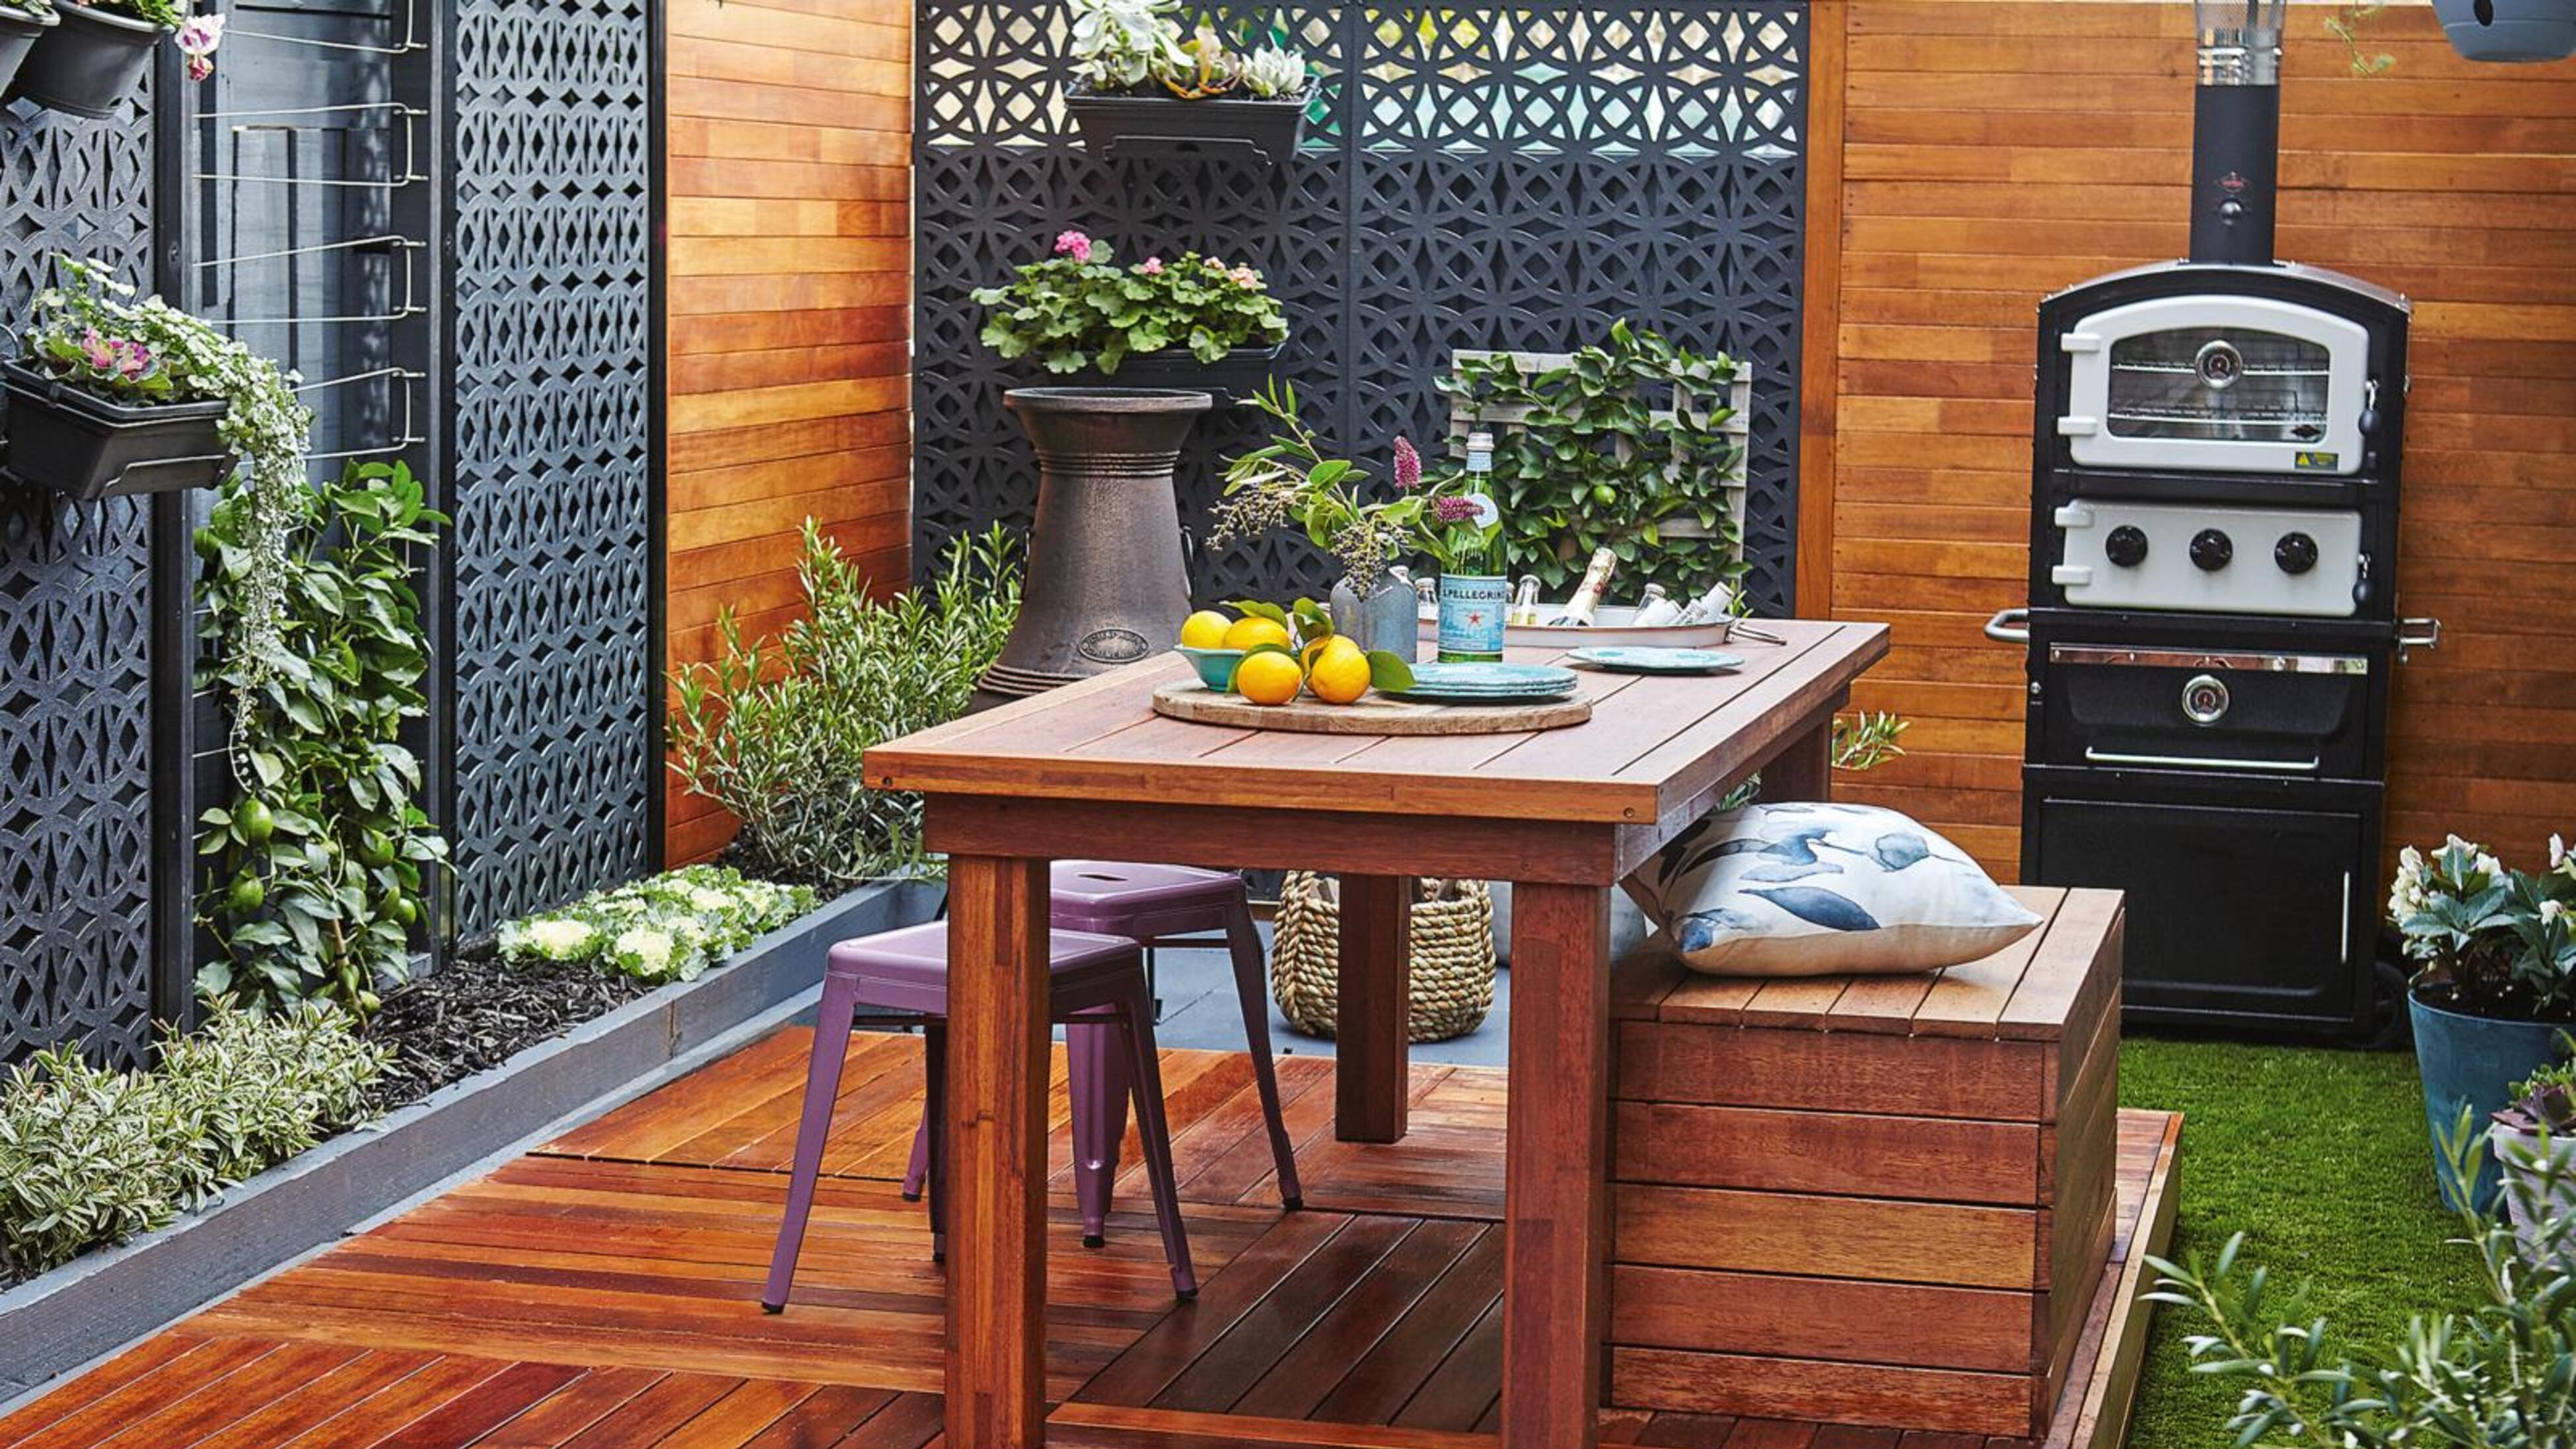 Outdoor entertaining area featuring black privacy screens.